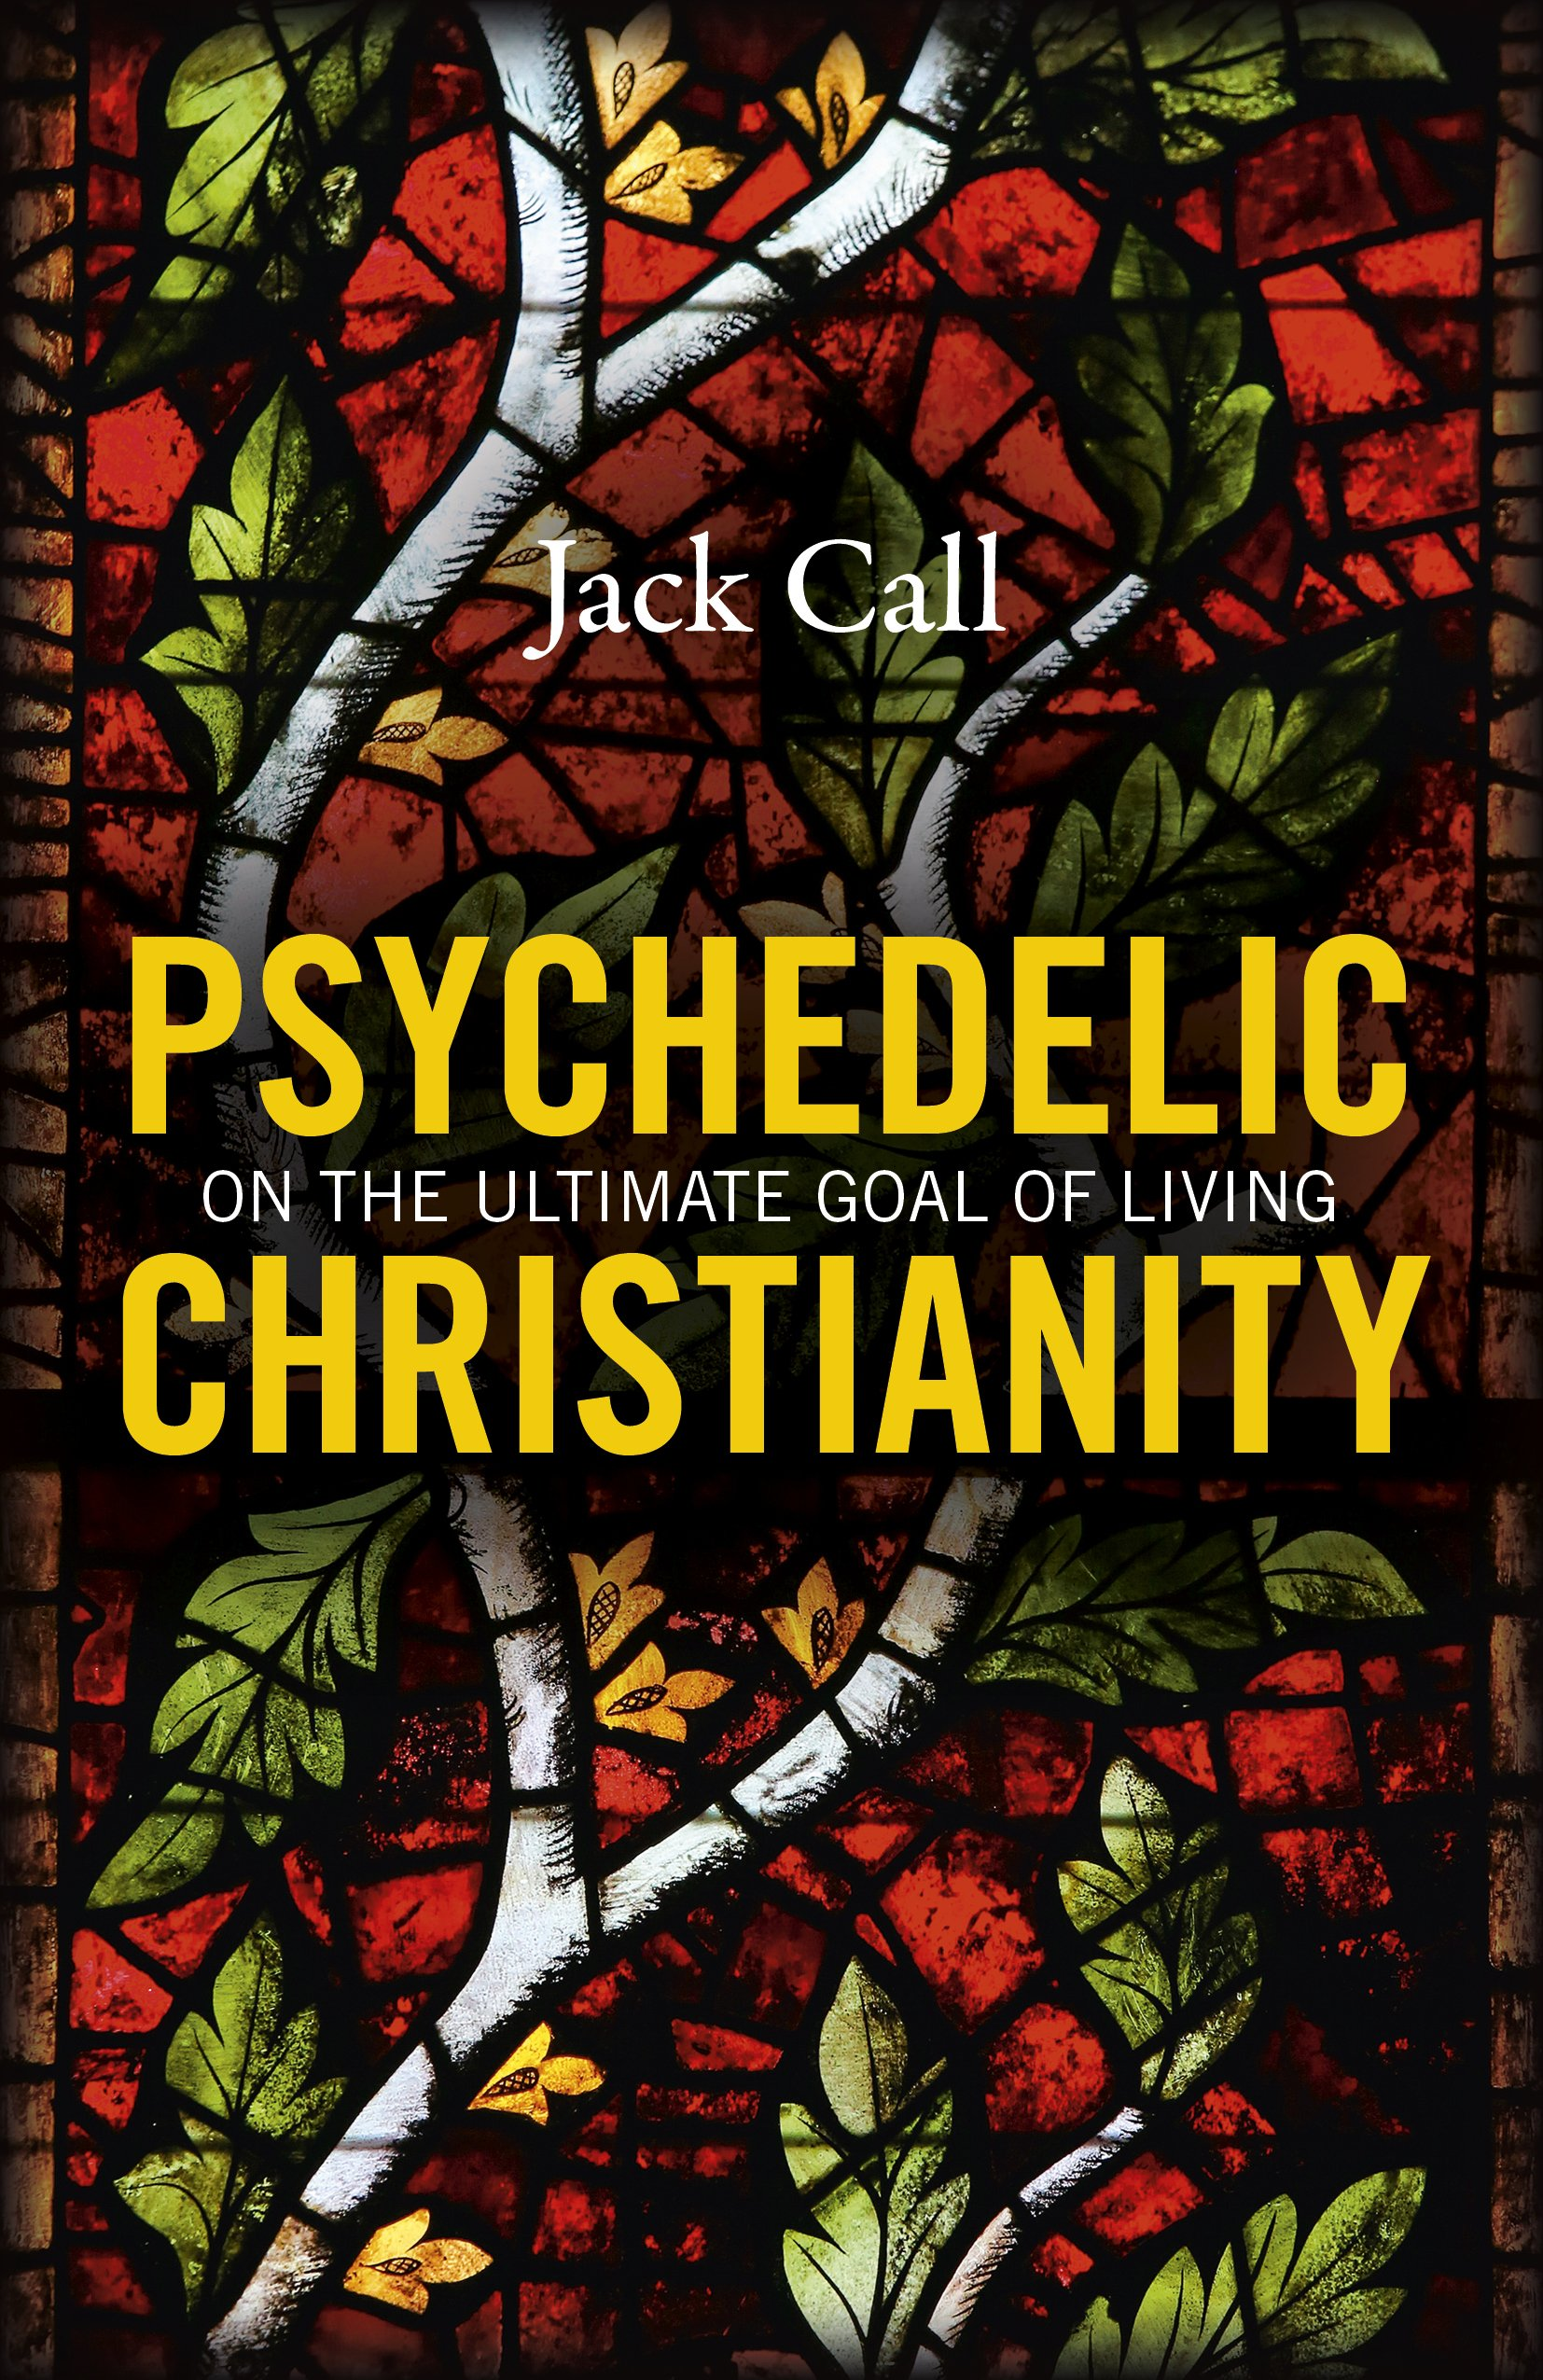 Psychedelic Christianity: On The Ultimate Goal Of Living